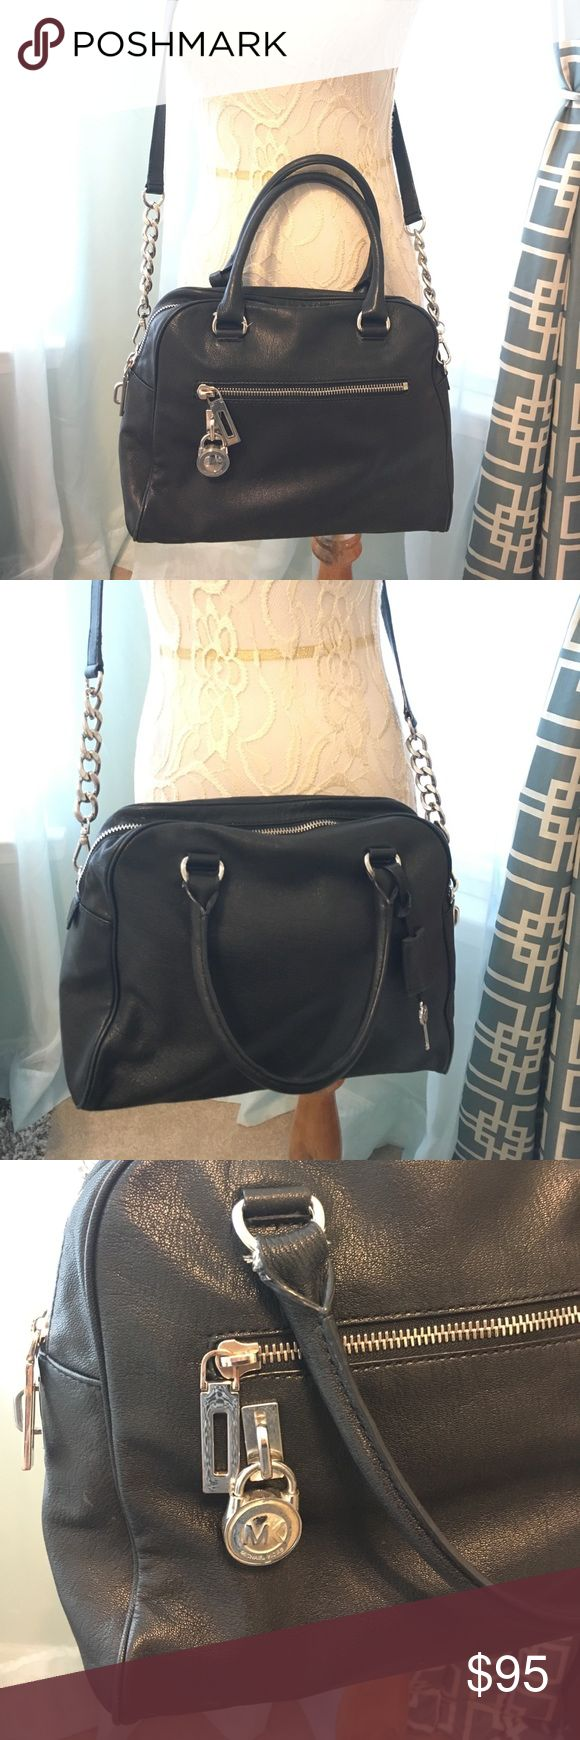 🌸Michael Kors Black Satchel/Crossbody🌸 Beautiful soft leather black Michael Kors satchel with long removable crossbody strap with silver metal link detail. Outside back large zippered pocket. Great size. Not too small or too large. 😊 Michael Kors Bags Satchels